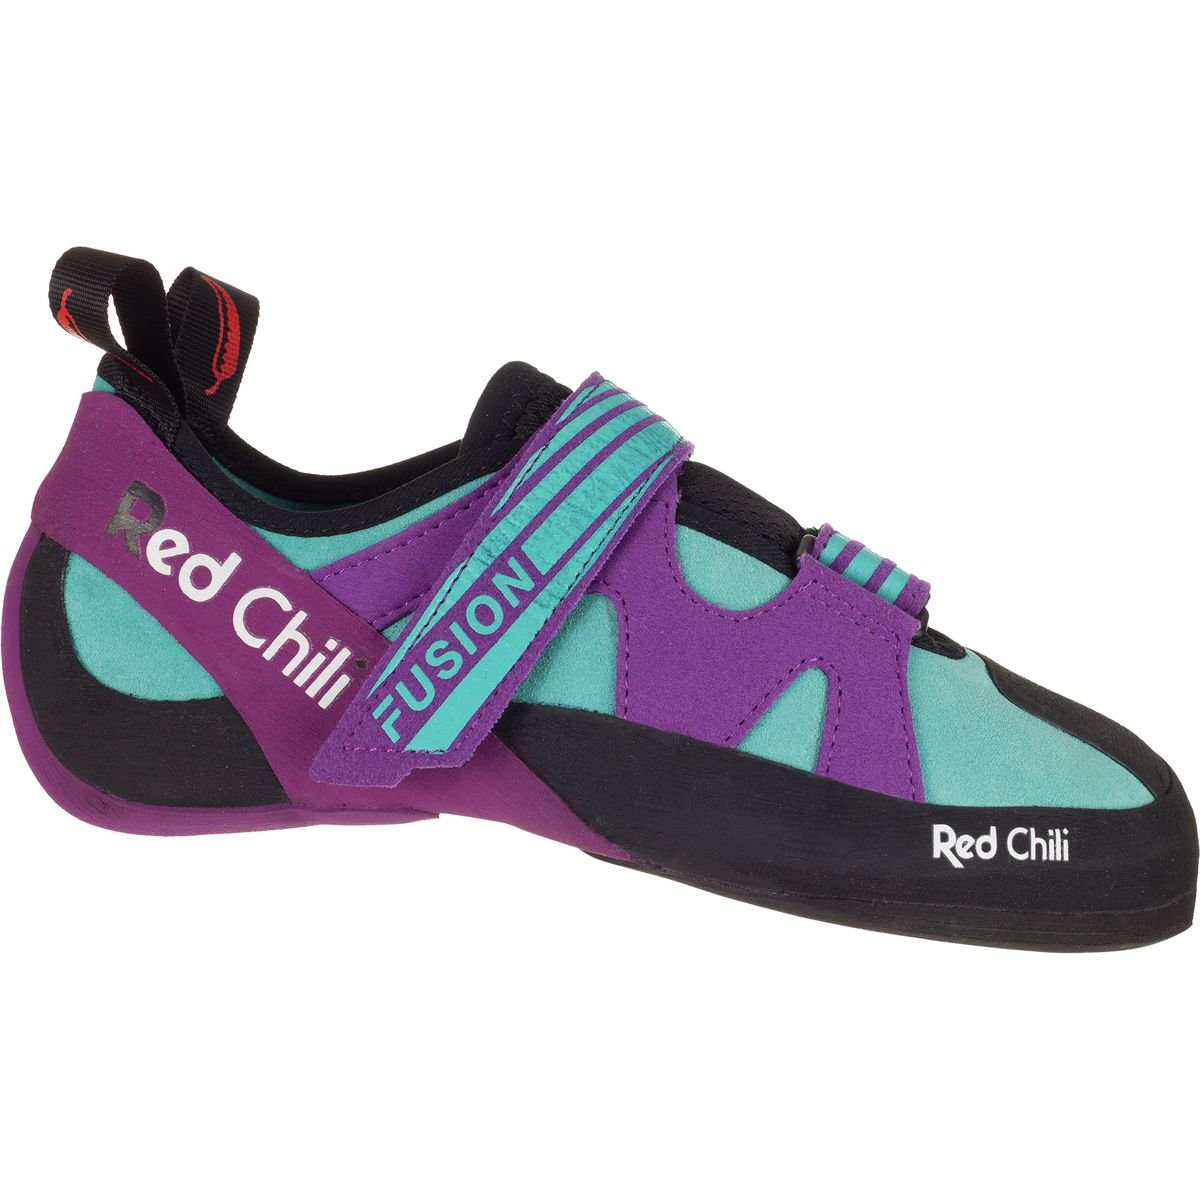 Red Chili Fusion VCR Climbing Shoe - Women's One Color, US 4.5/UK 3.0 by Red Chili